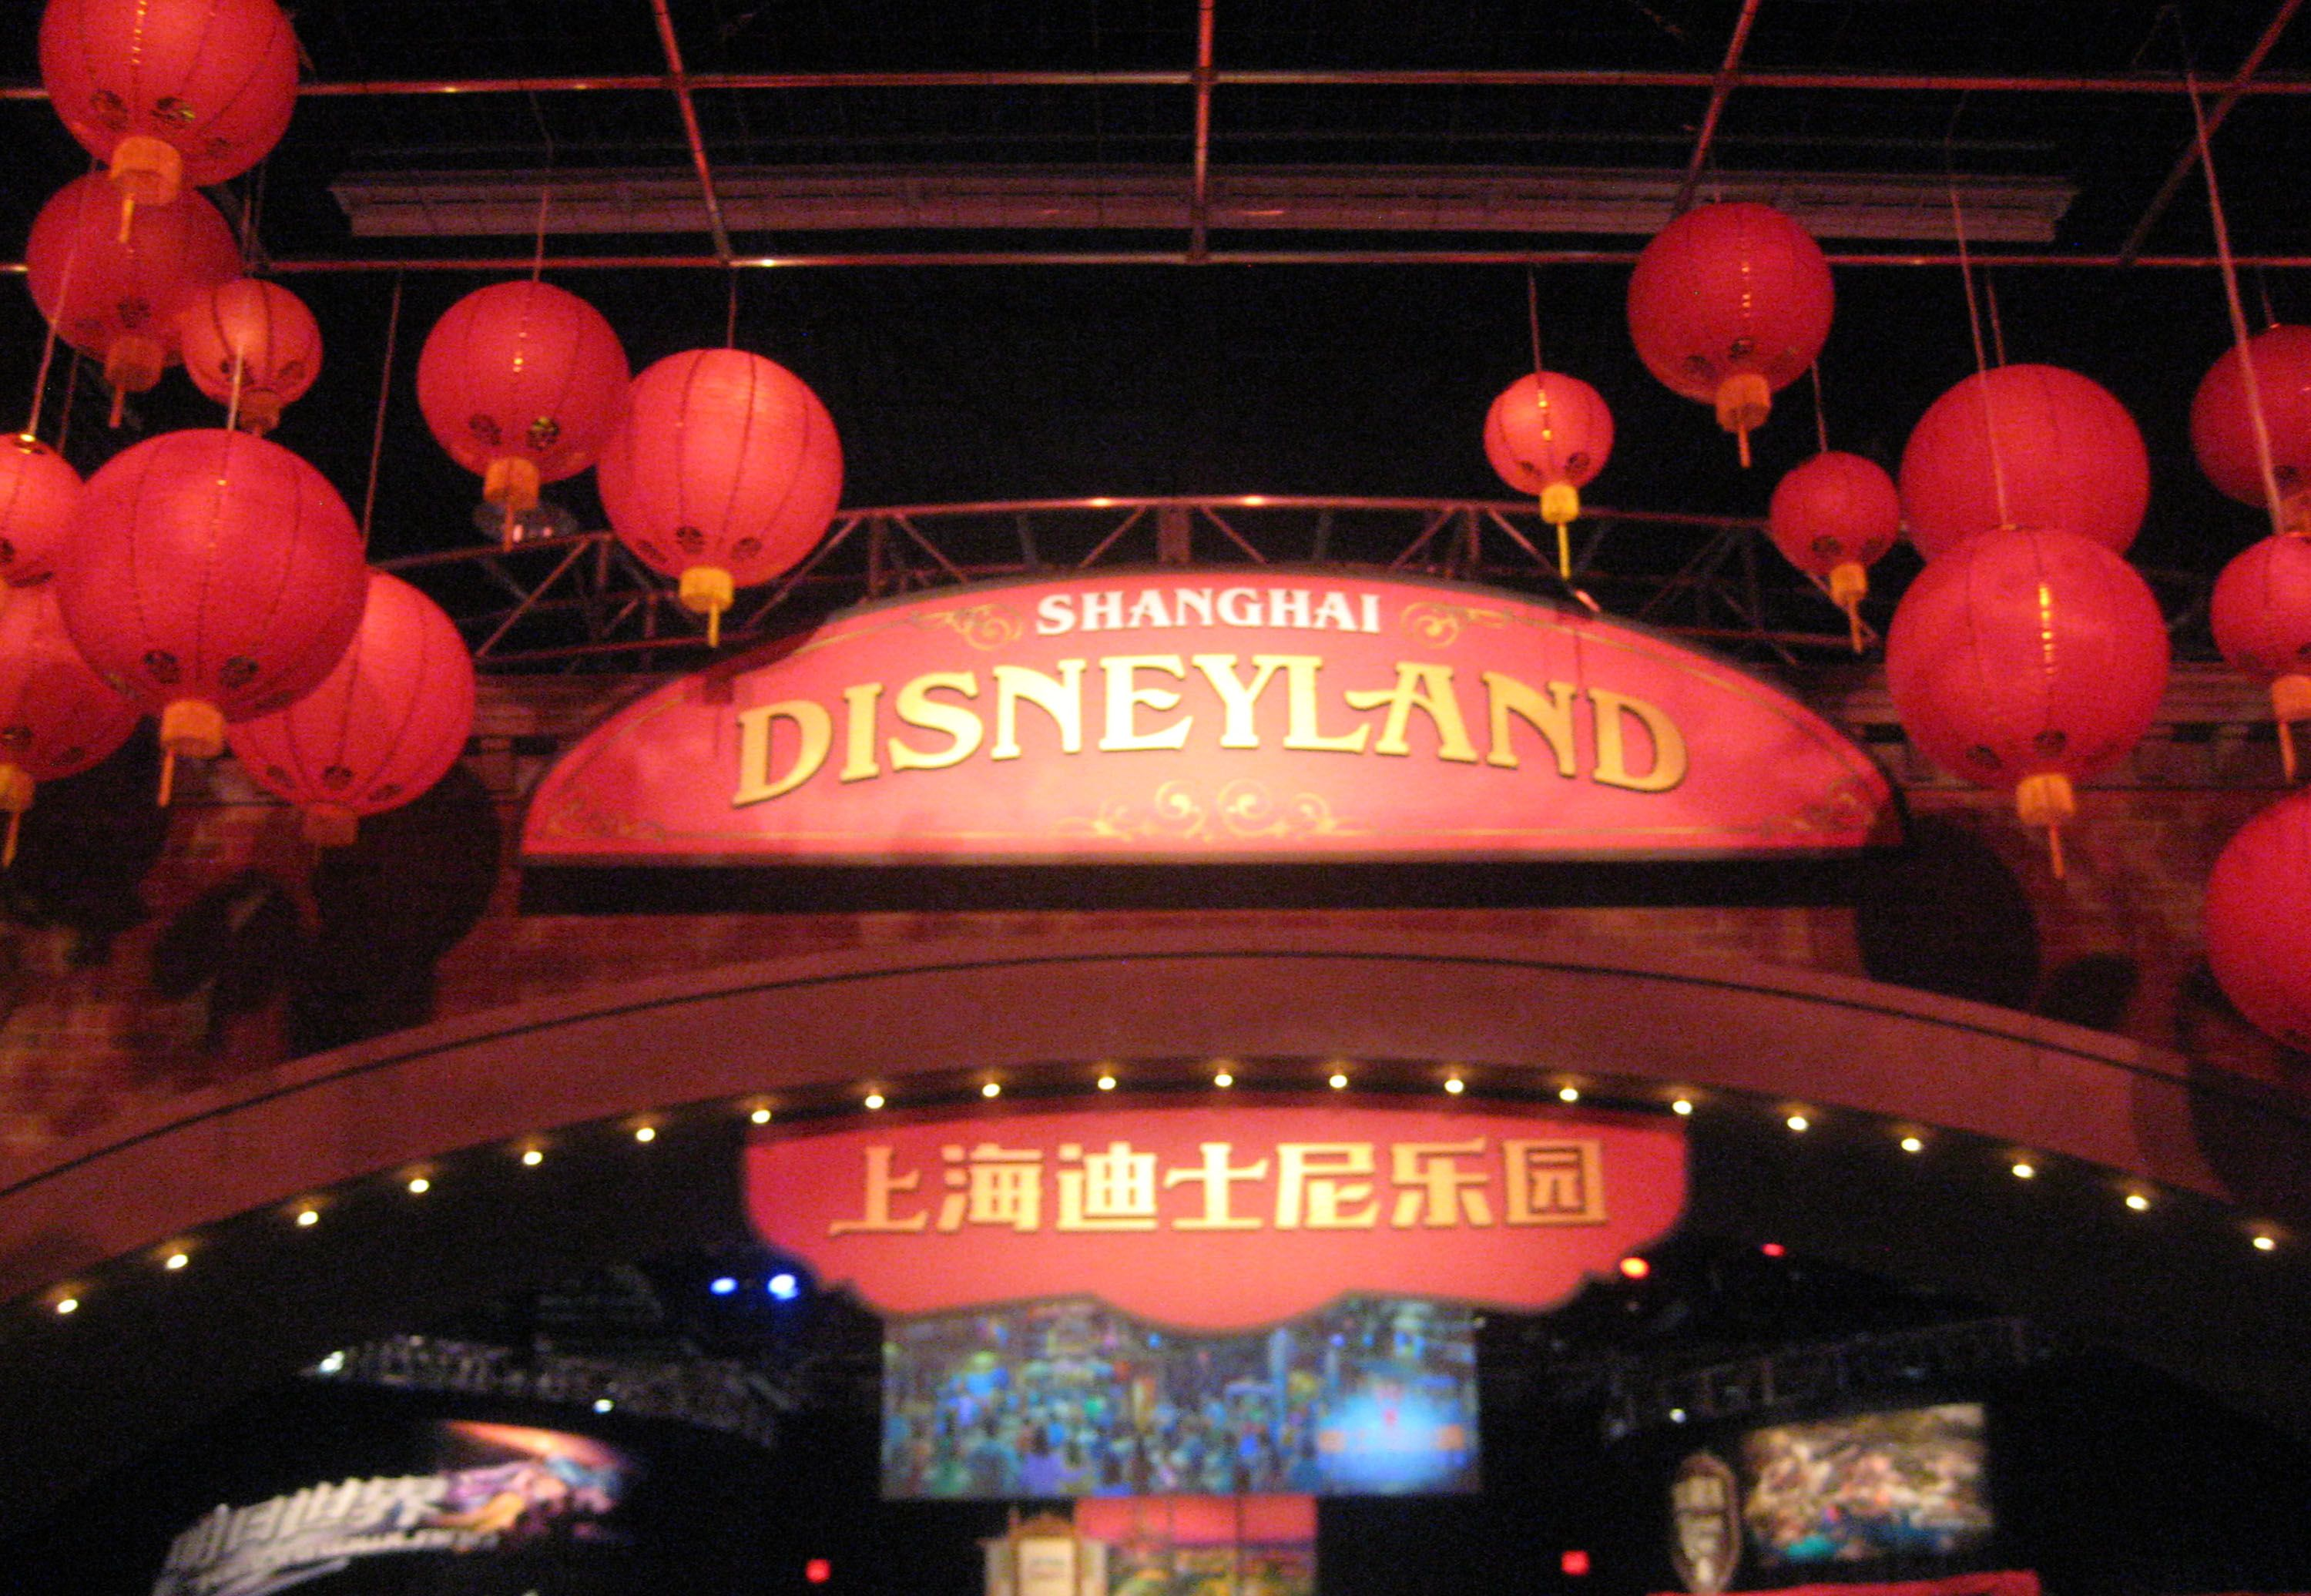 Shanghai Disneyland Images From D23 Expo Collider